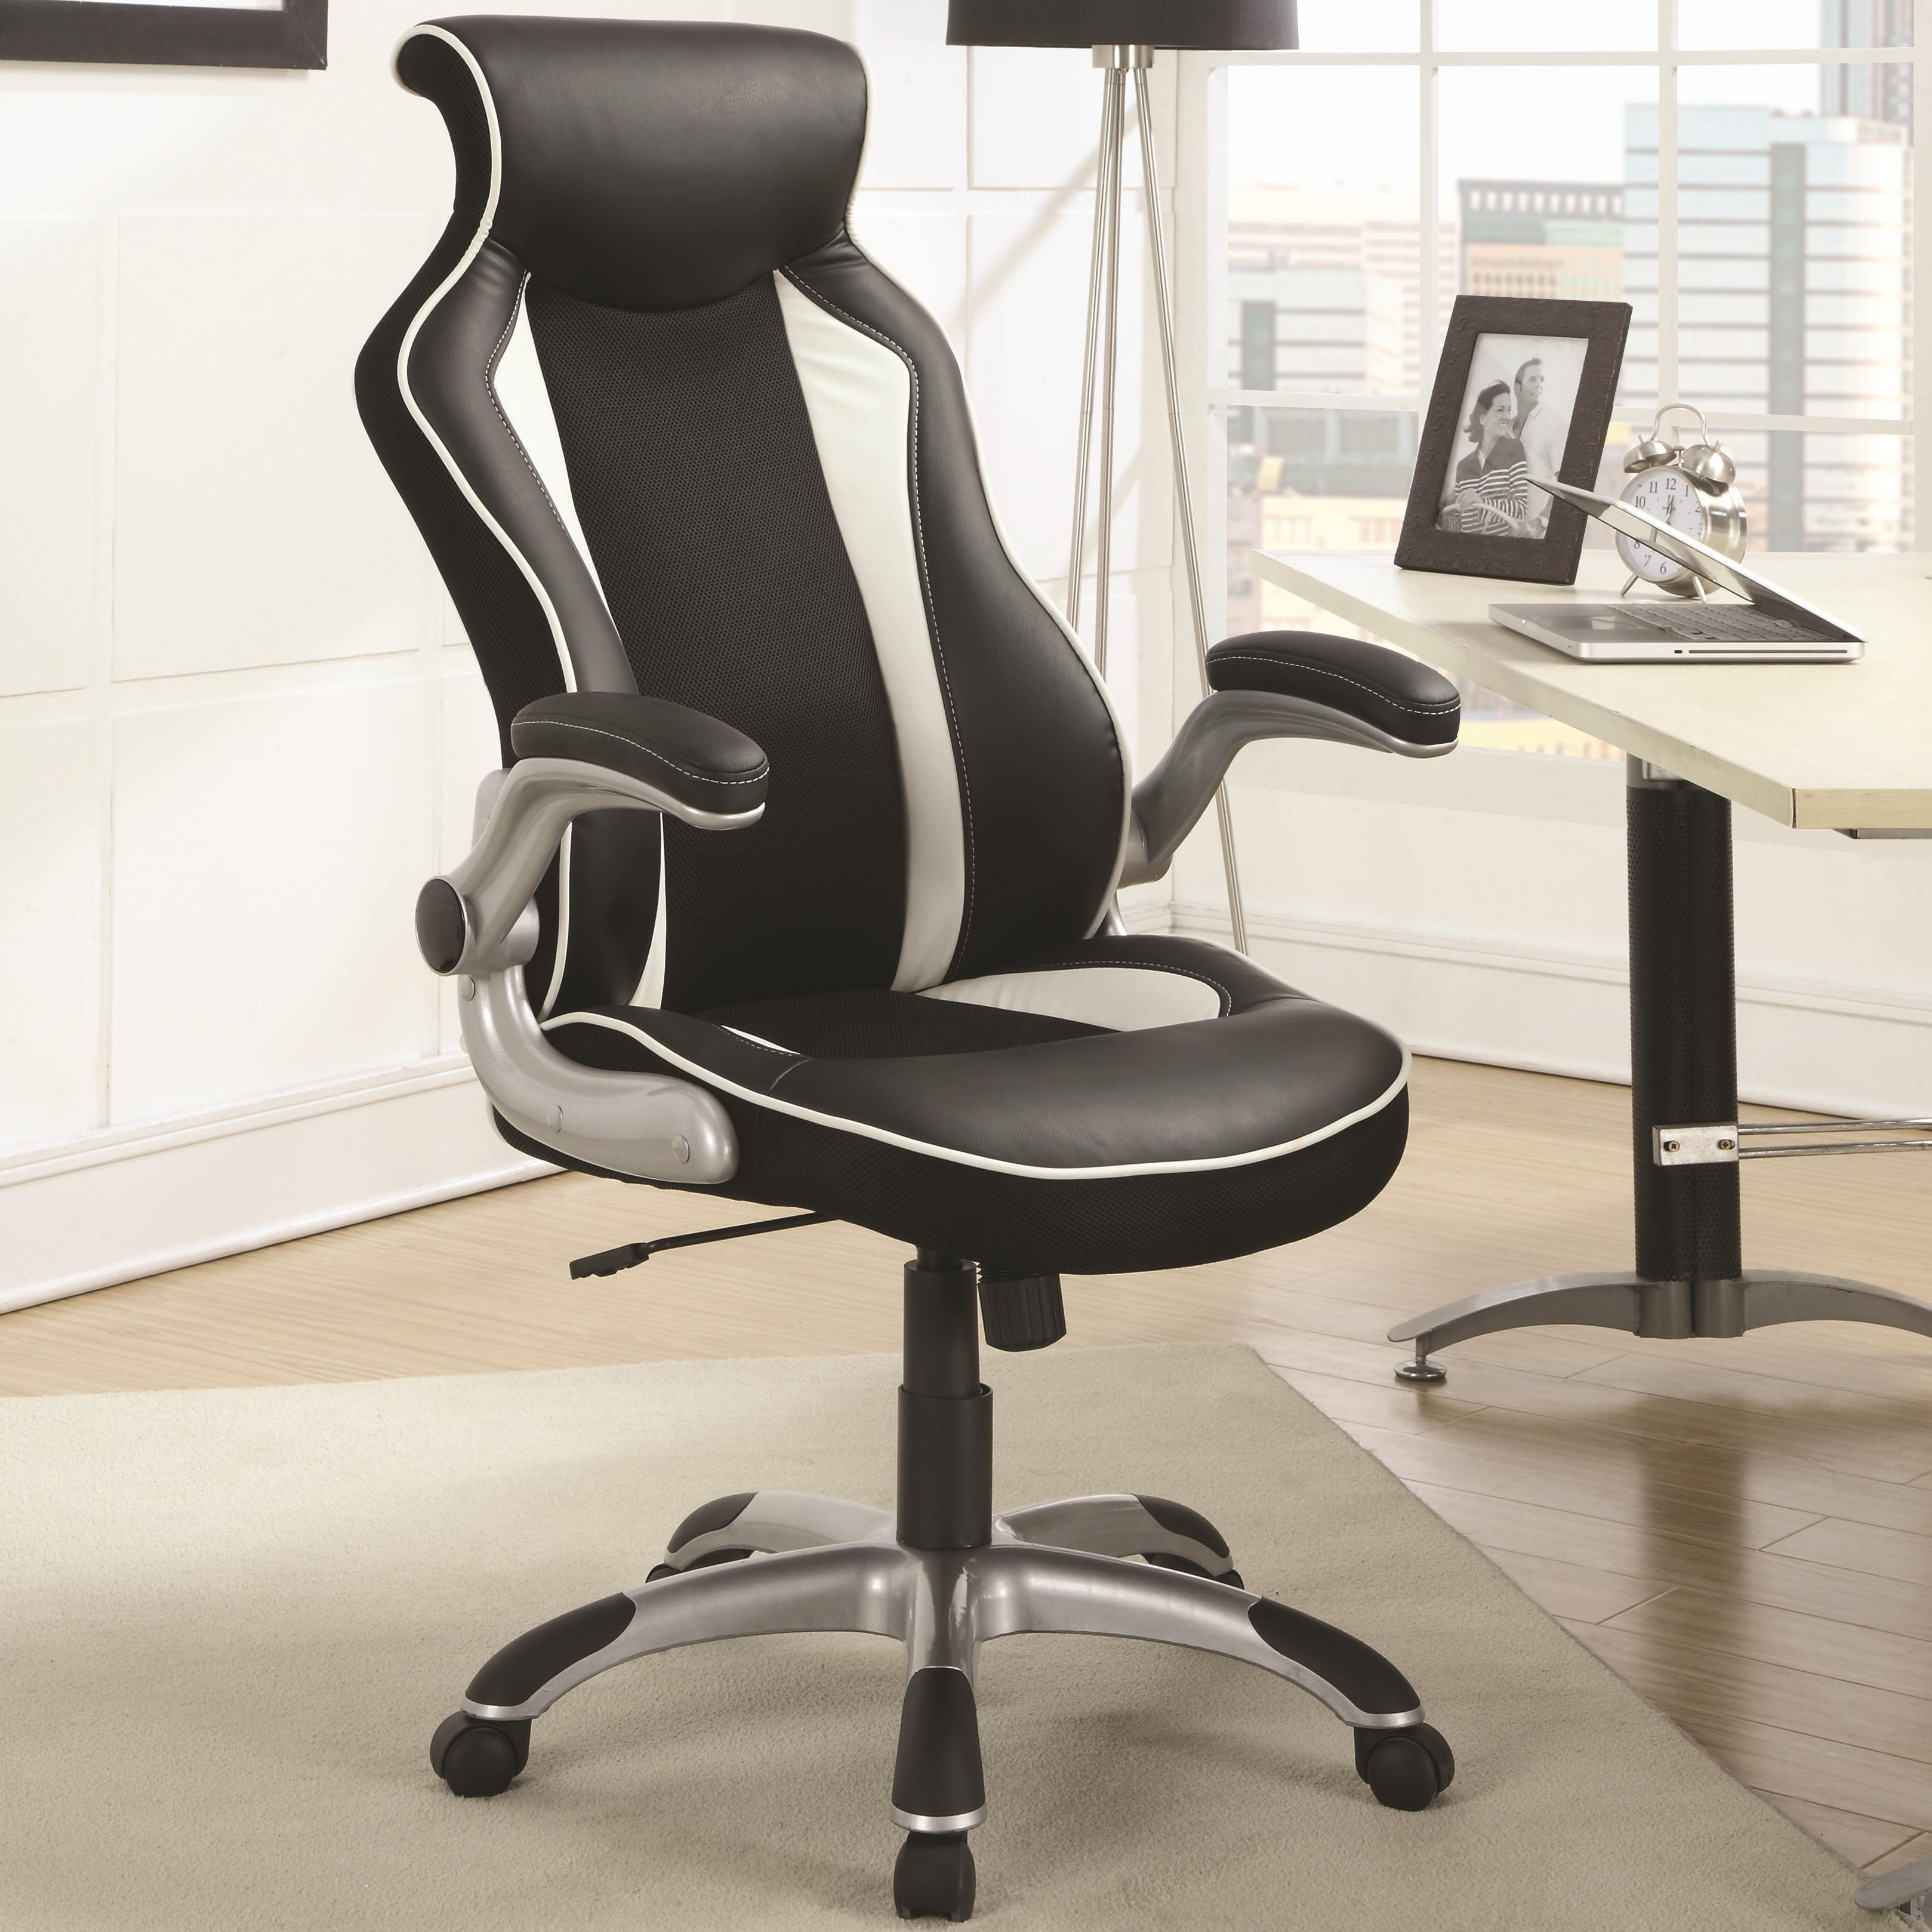 Racing Seat Office Chair Office Chairs Office Task Chair With Race Car Seat Design By Coaster At Rooms For Less